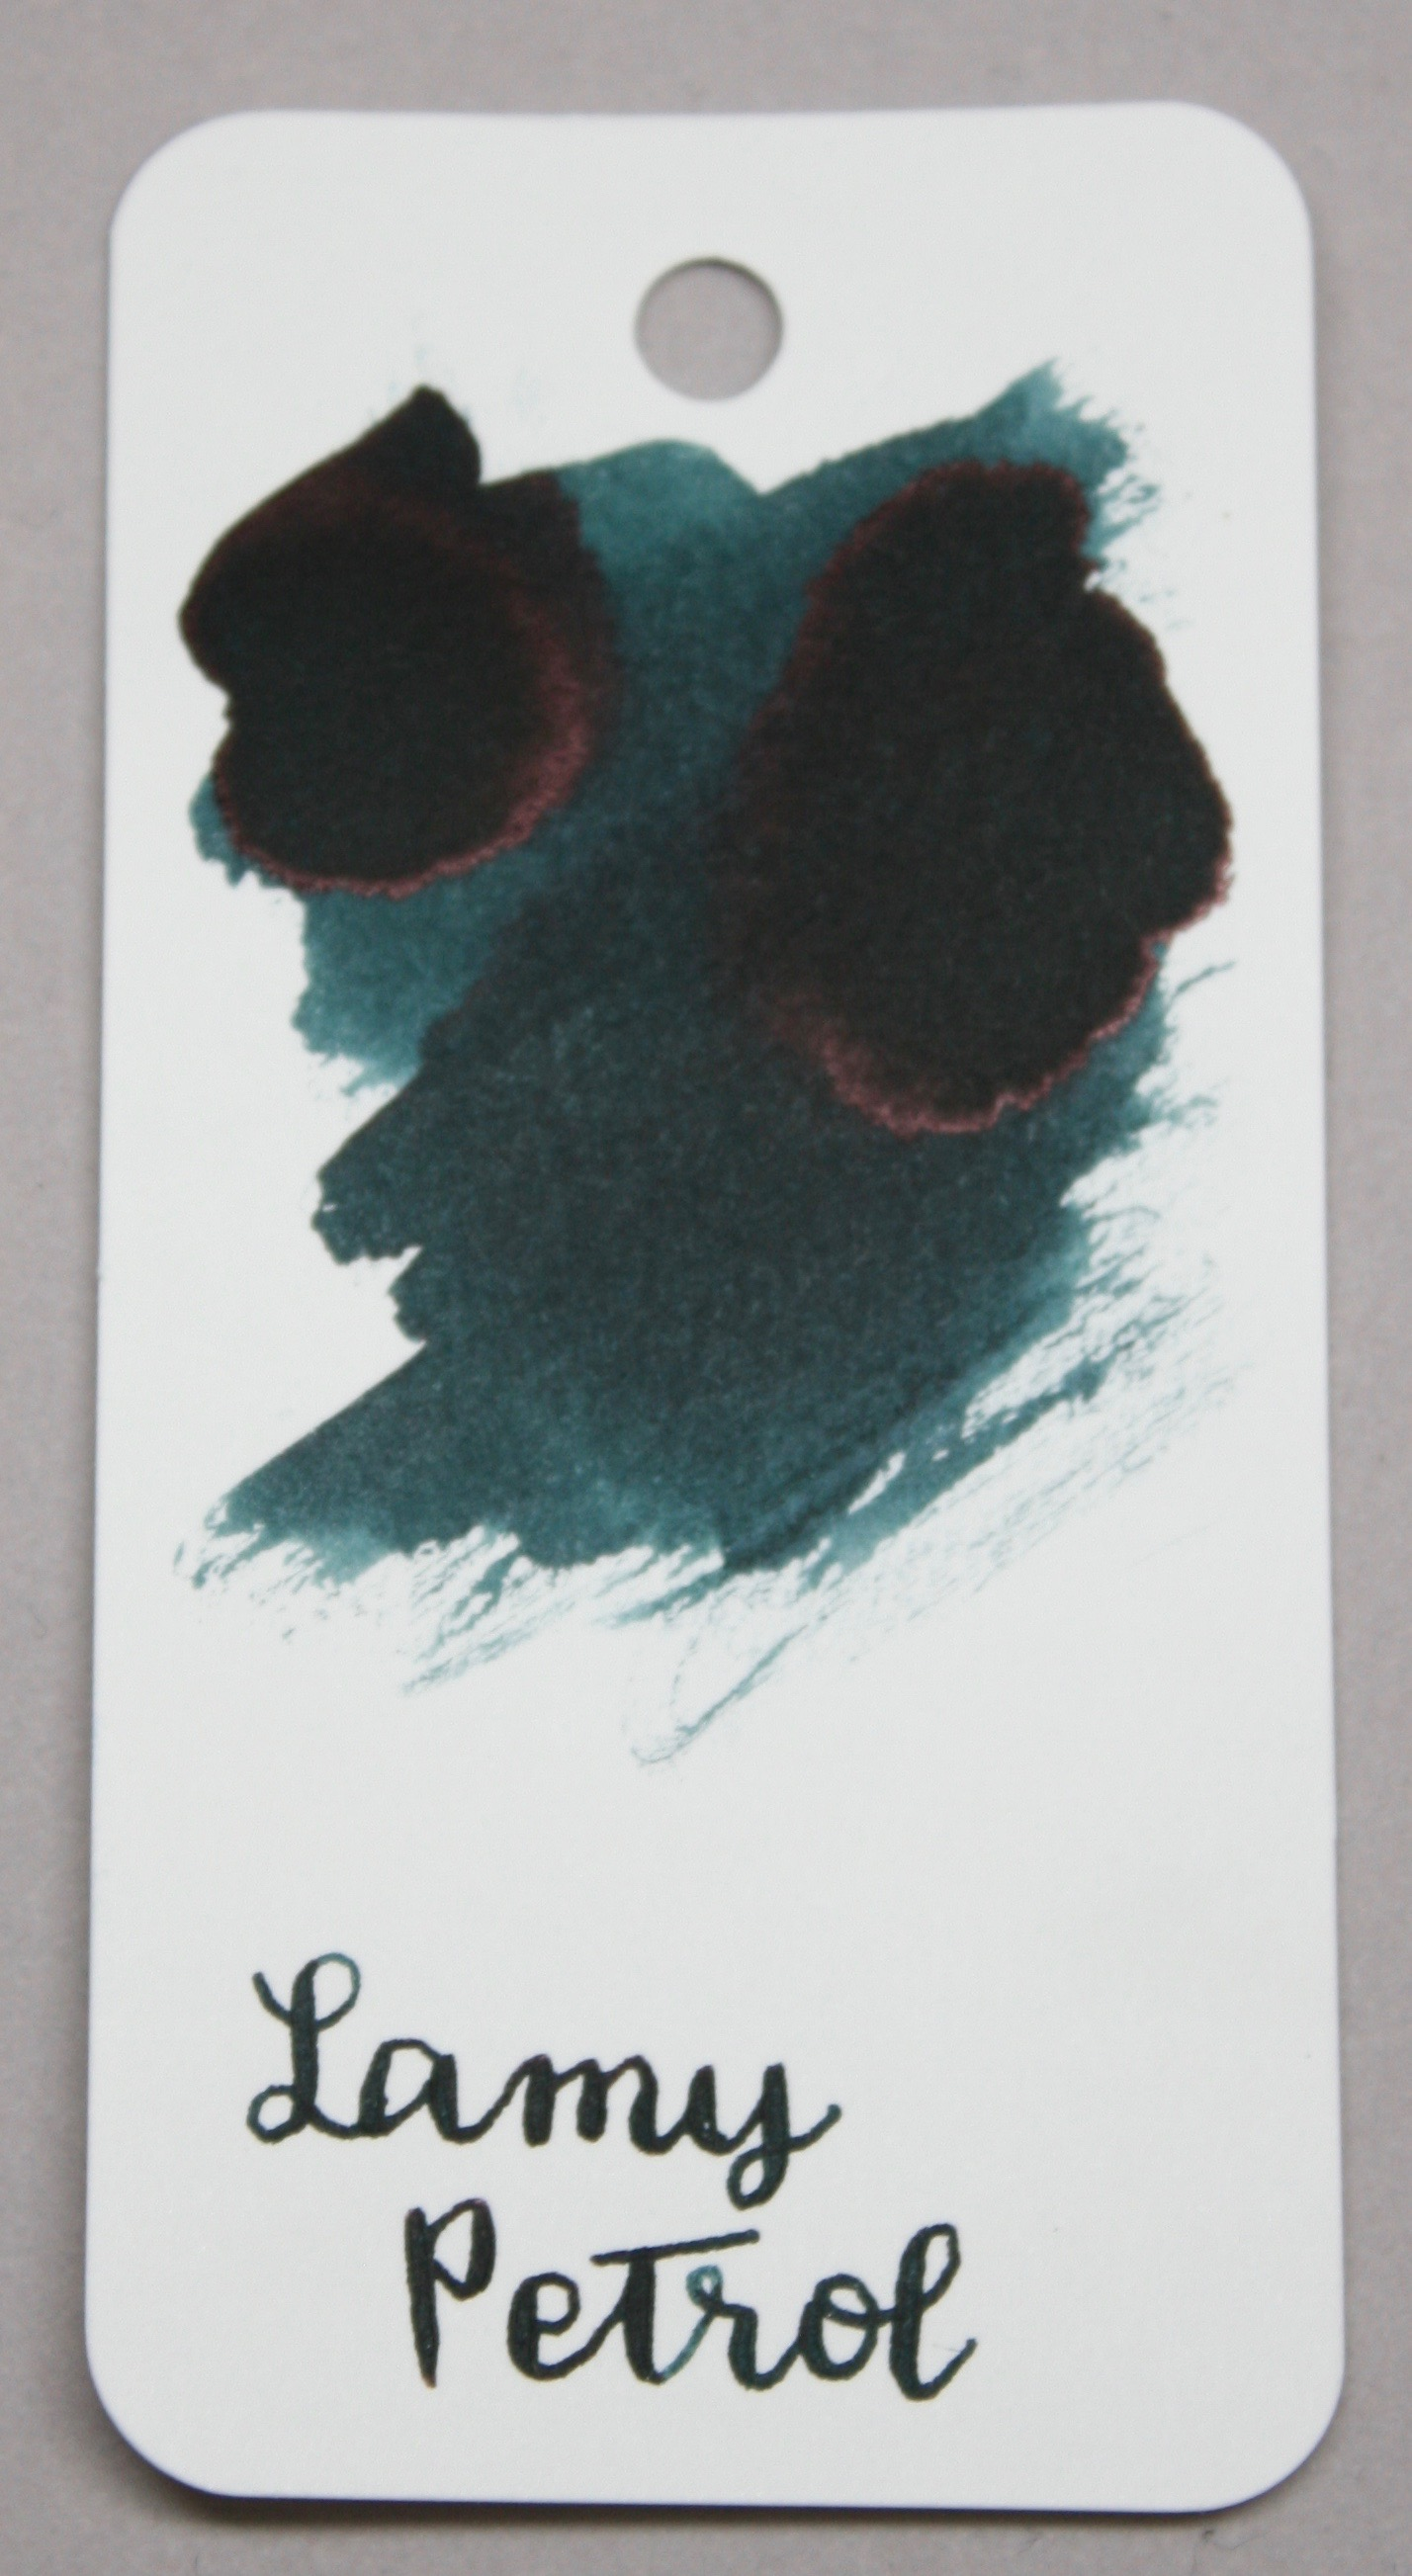 The color... - The ink is dark, not quite navy color when concentrated. When used with smaller nibs, it looks more of a dark teal. This swab was done on the Col-o-ring by Skylab Letterpress.